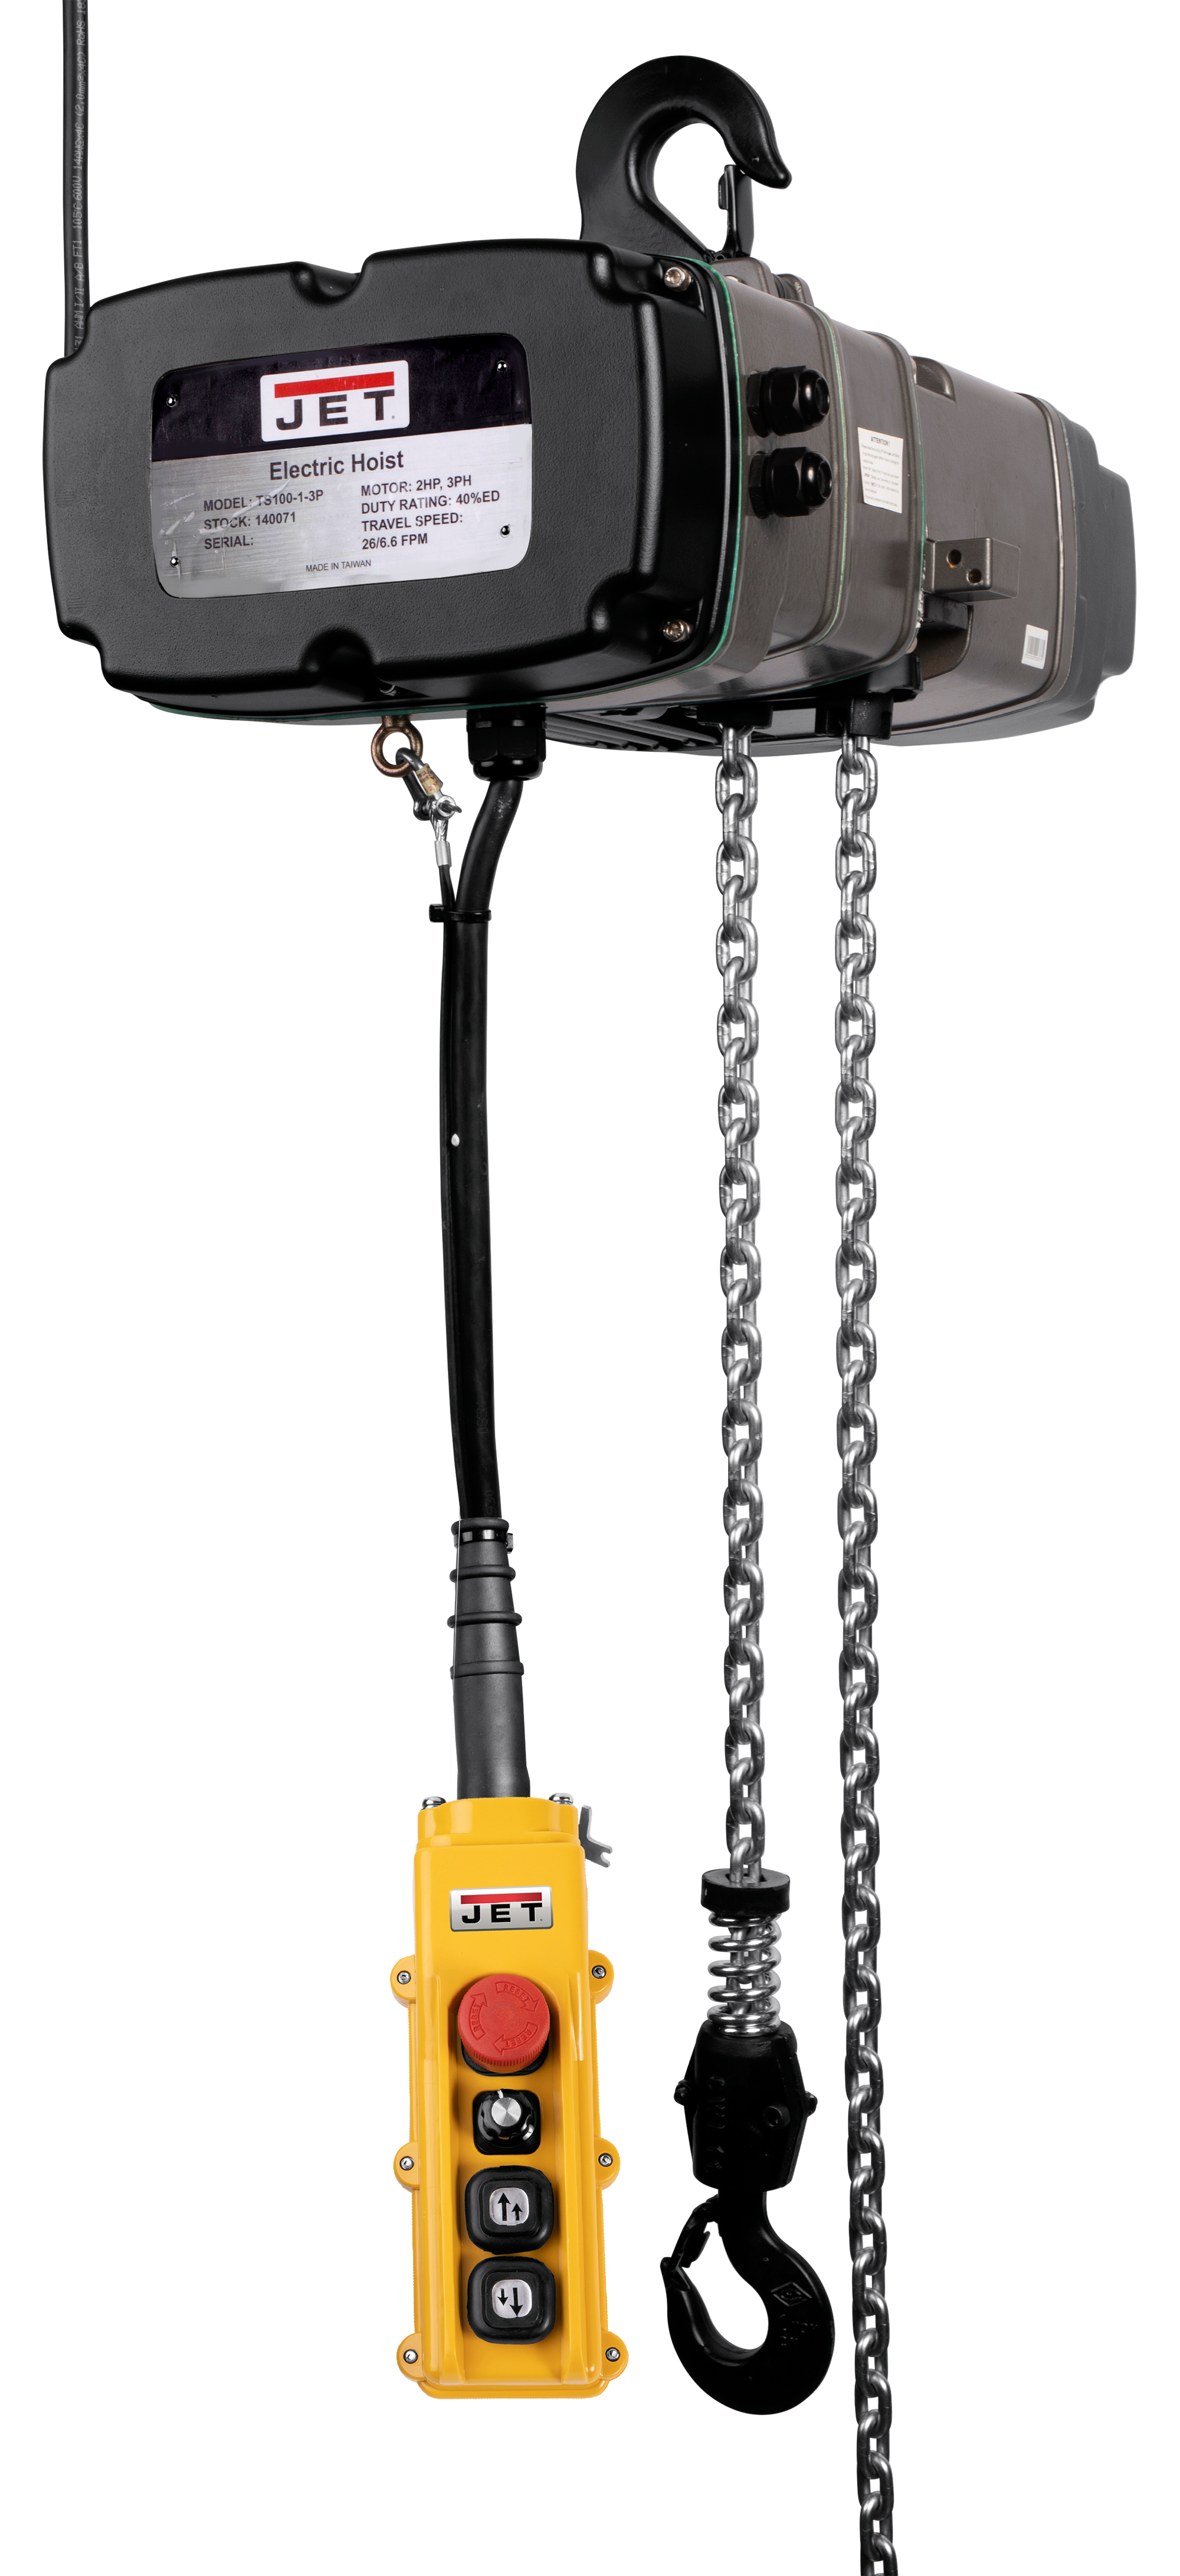 TS300-230-010, 3-Ton Two Speed Electric Chain Hoist  3-Phase 10' Lift